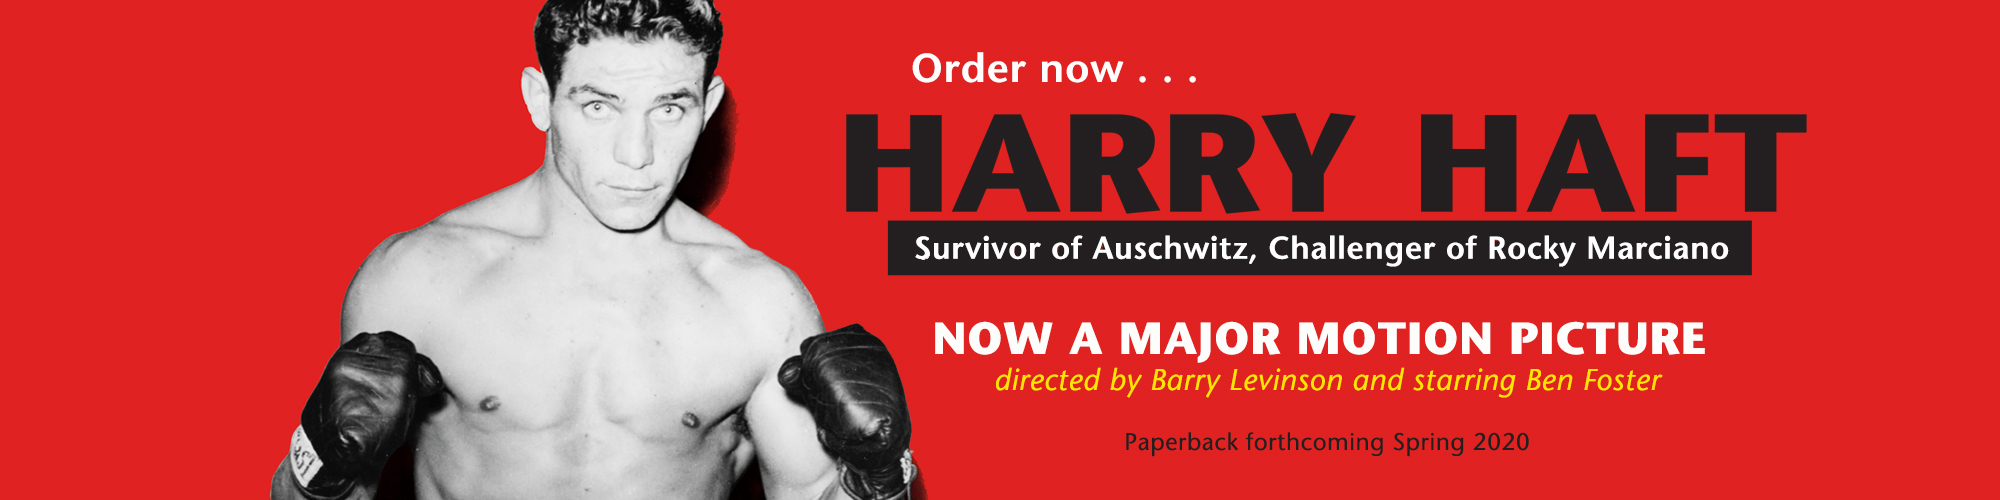 Harry Haft now a major motion picture